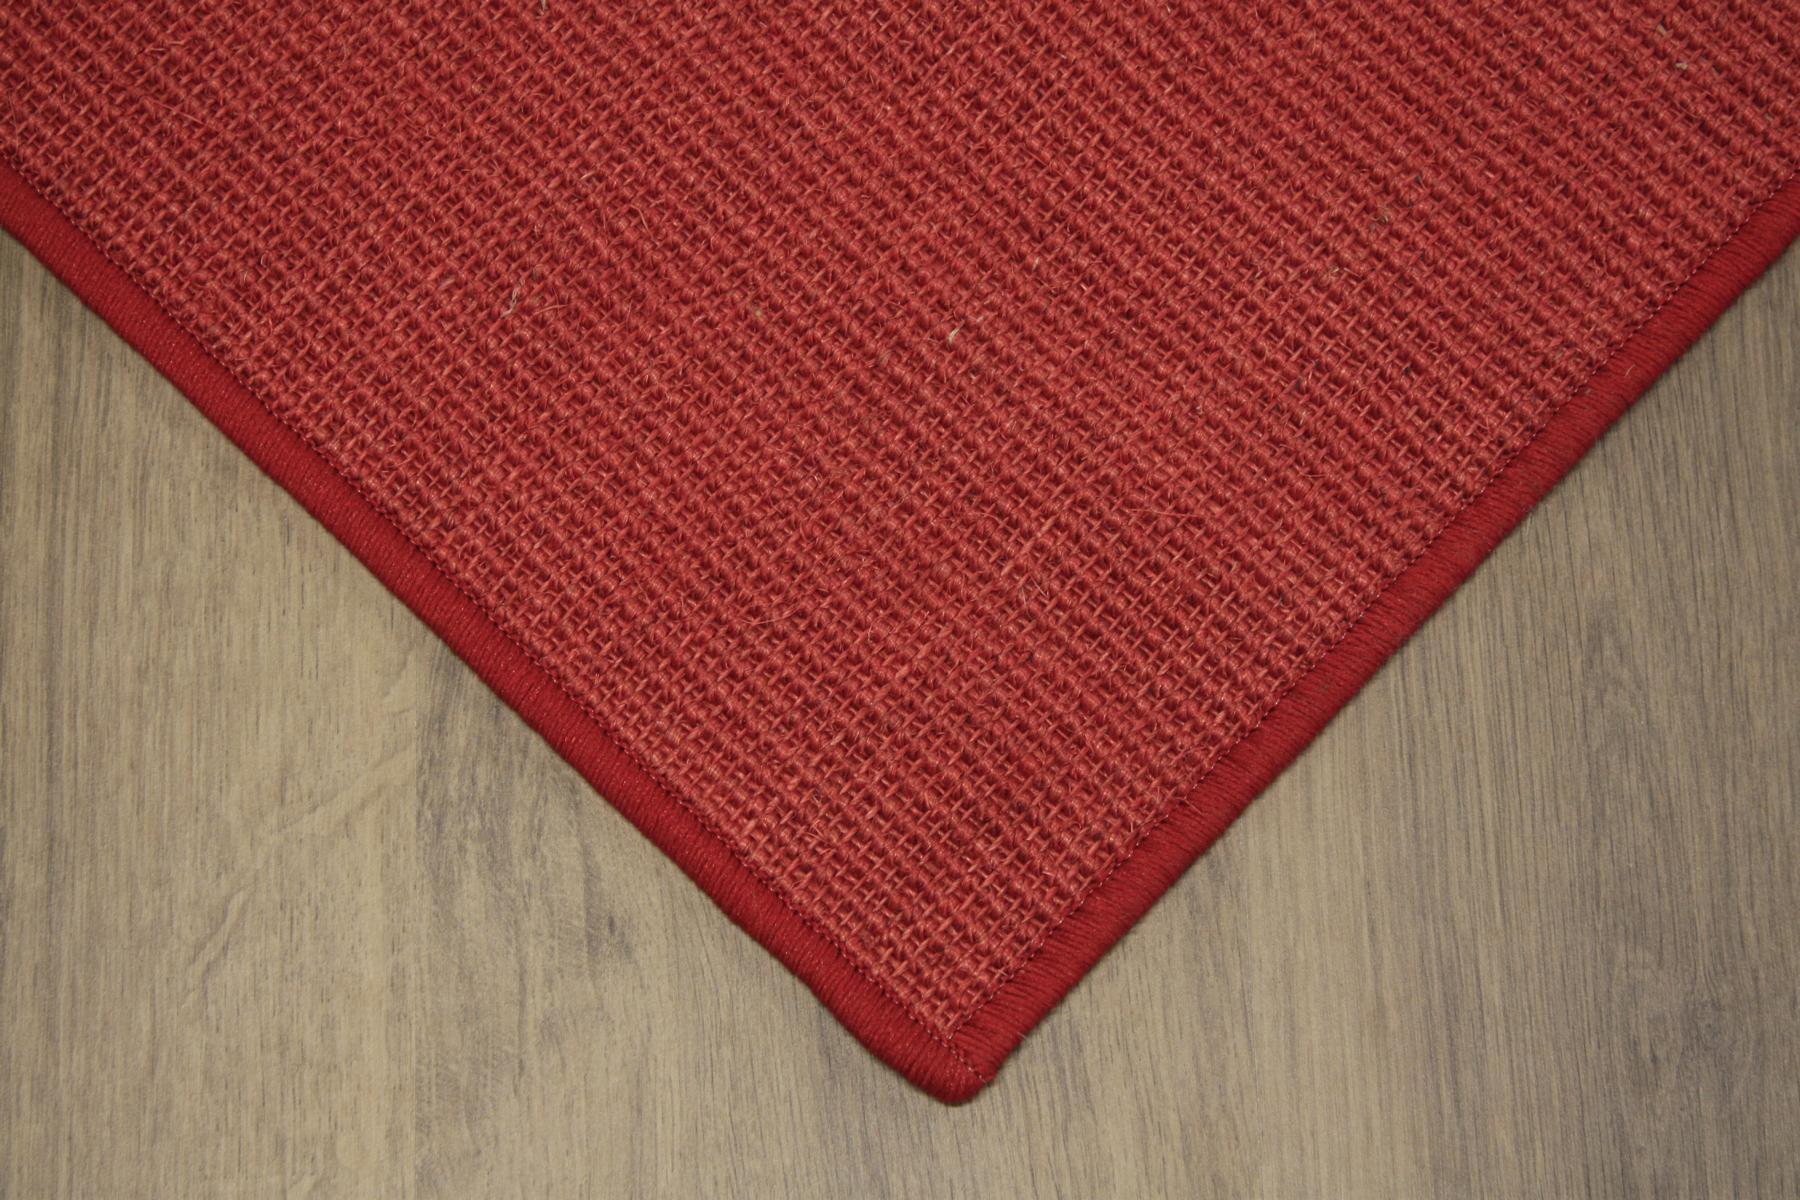 sisal tapis surfil rouge 200x200cm 100 sisal boucle ebay. Black Bedroom Furniture Sets. Home Design Ideas